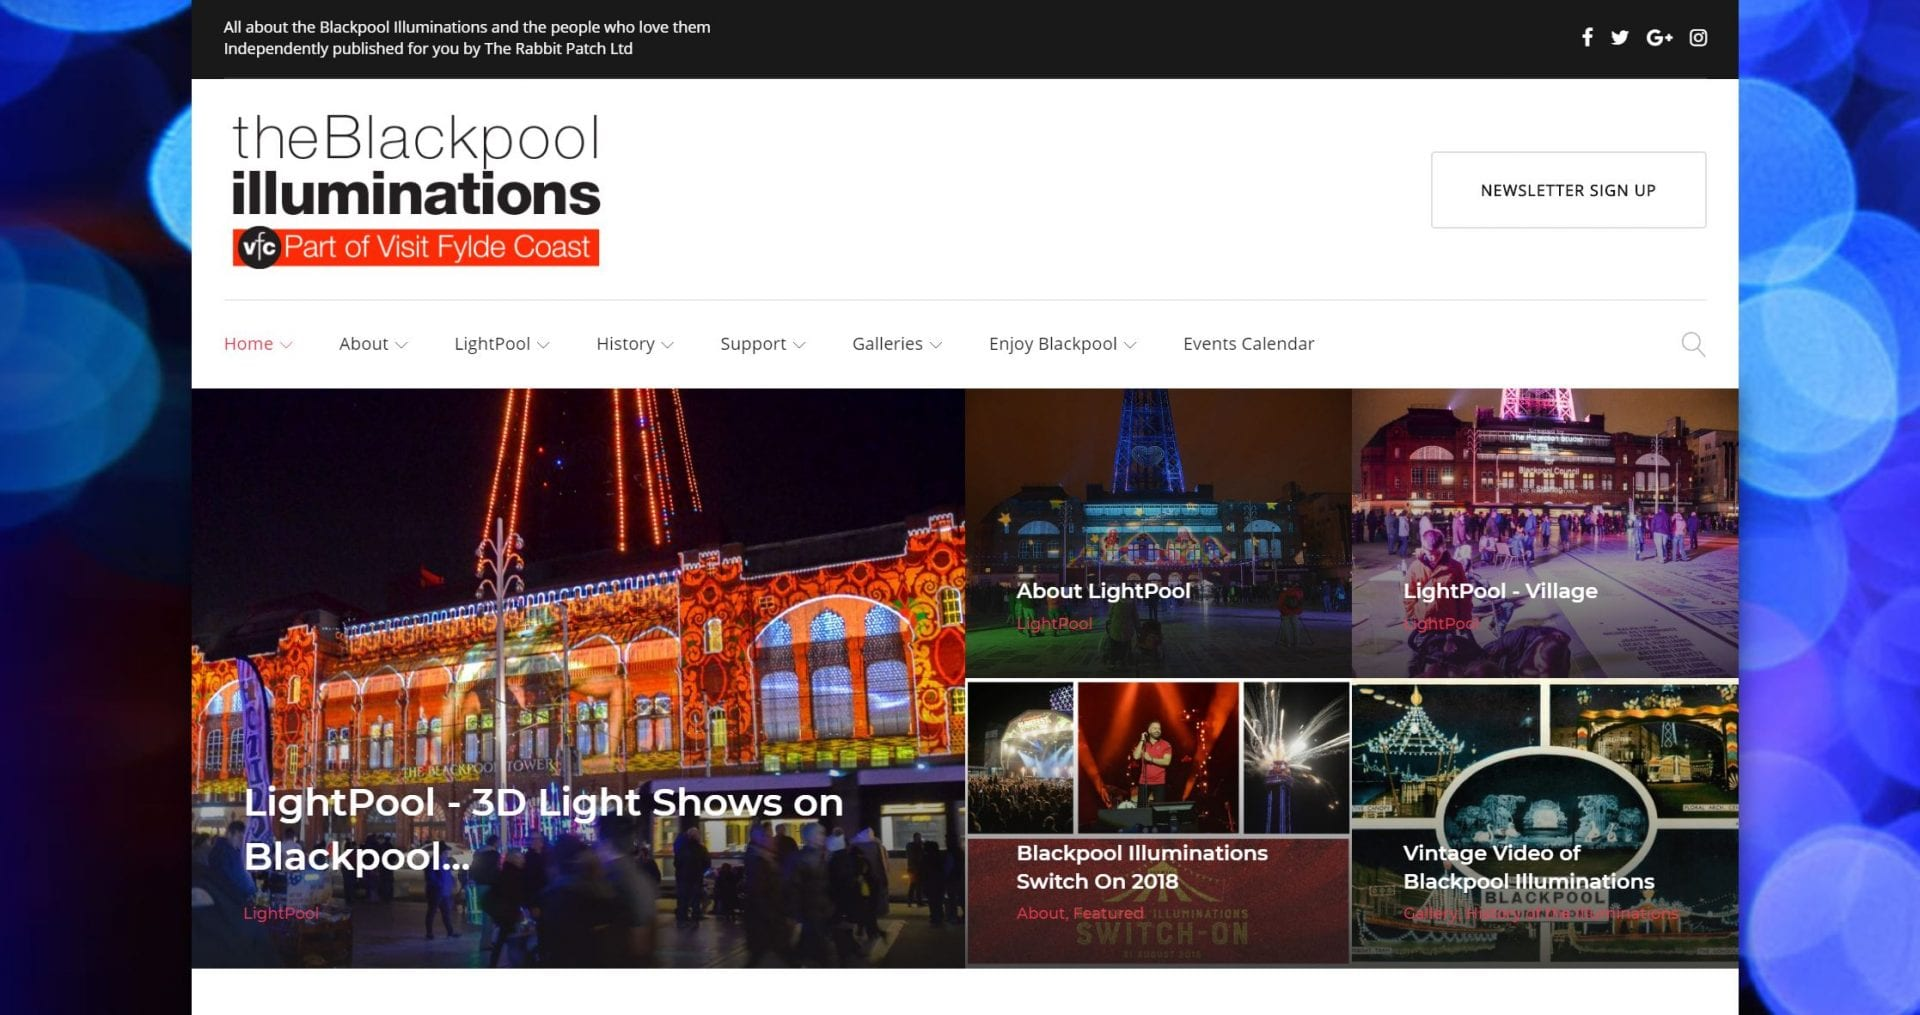 The Blackpool Illuminations website from Visit Fylde Coast